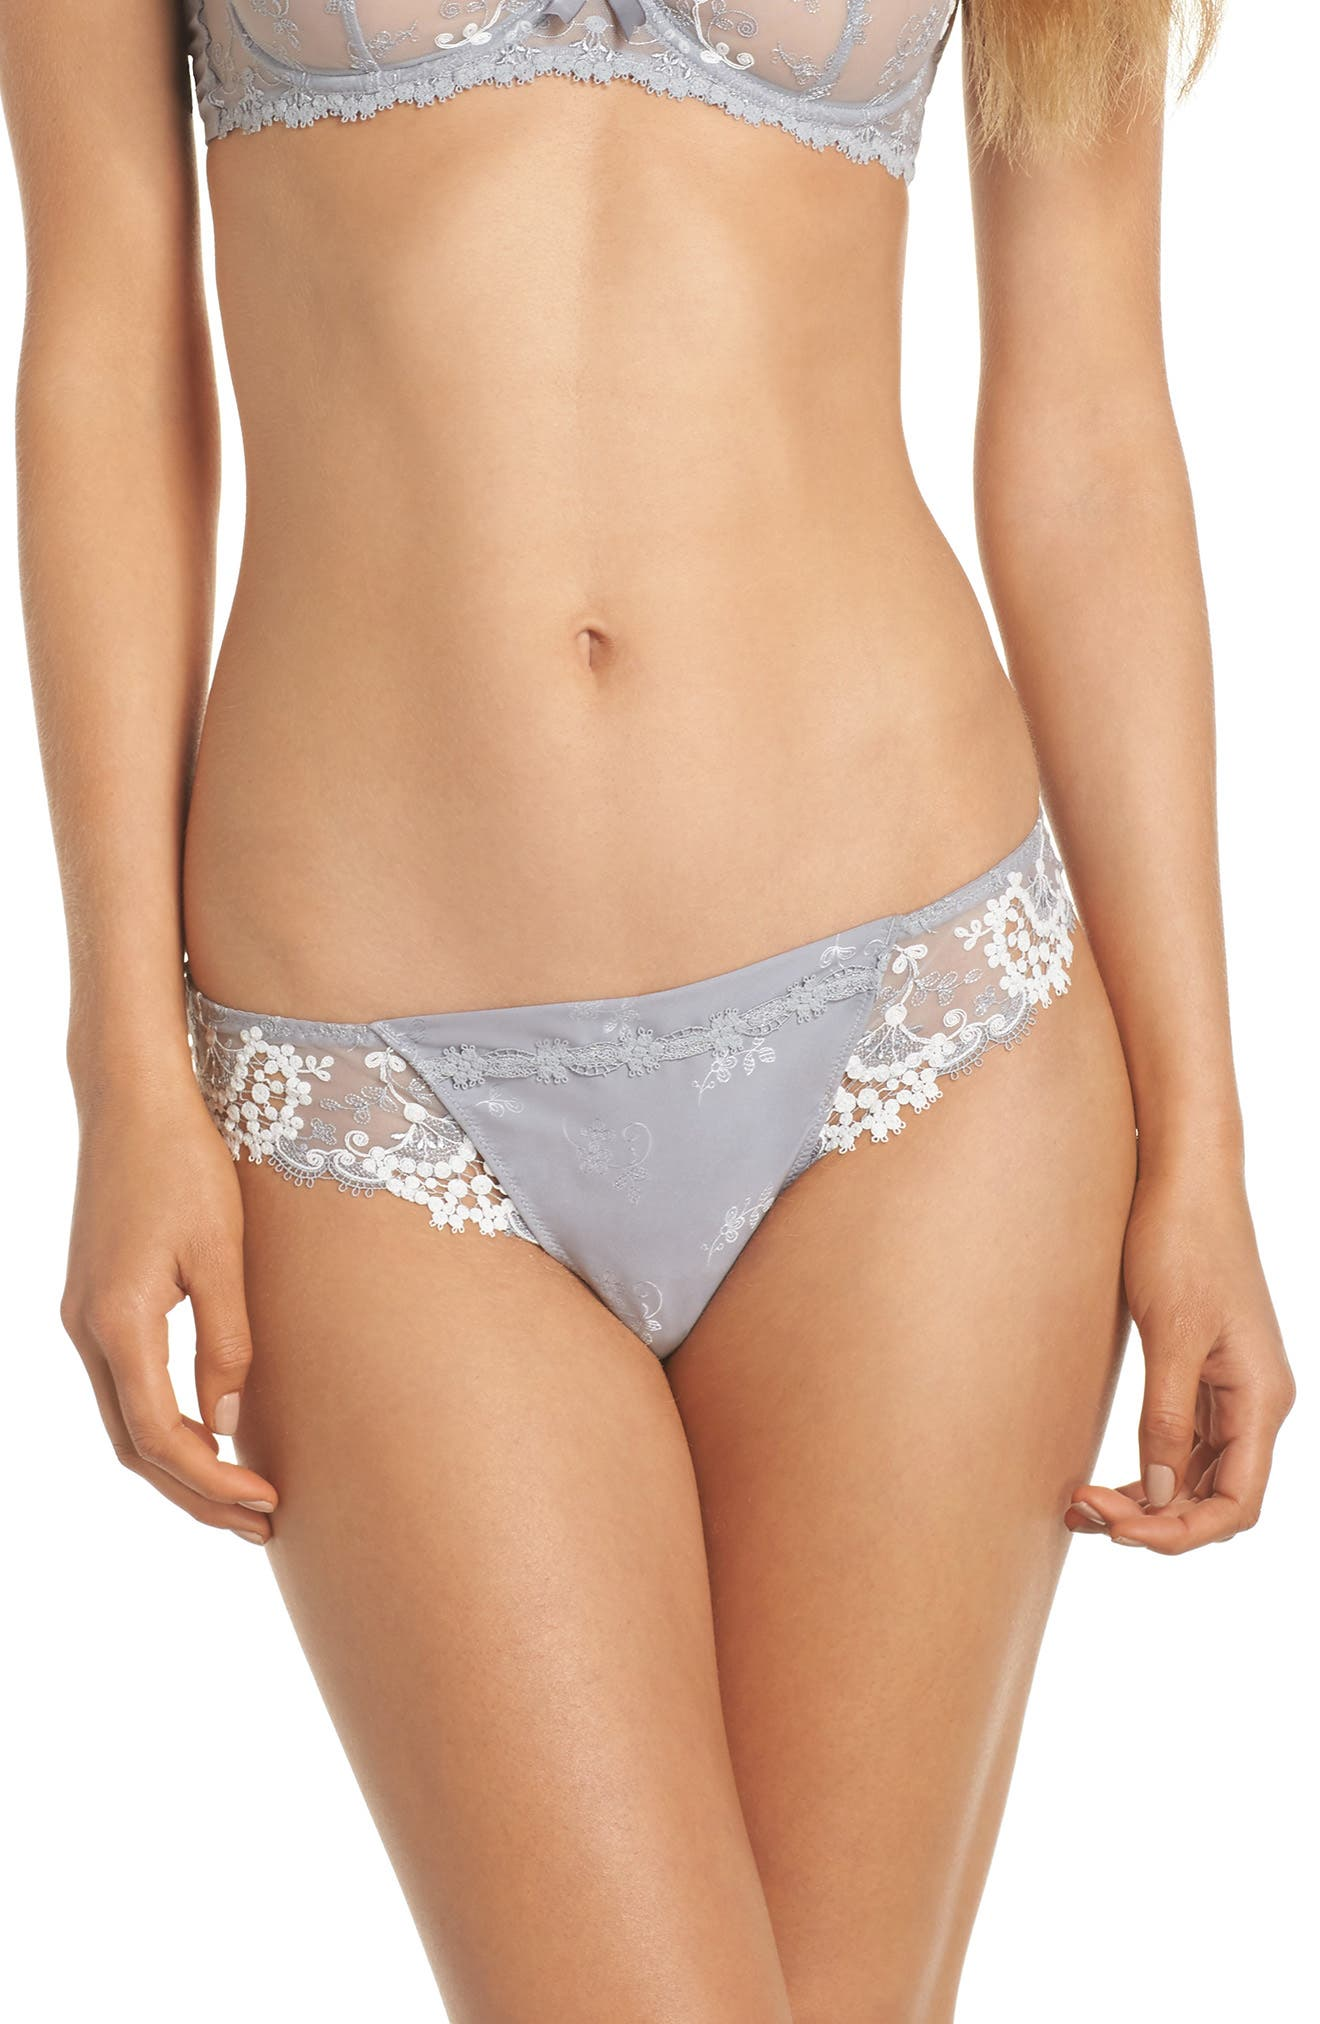 Simone Perele 'Wish' Embroidered Tanga Thong